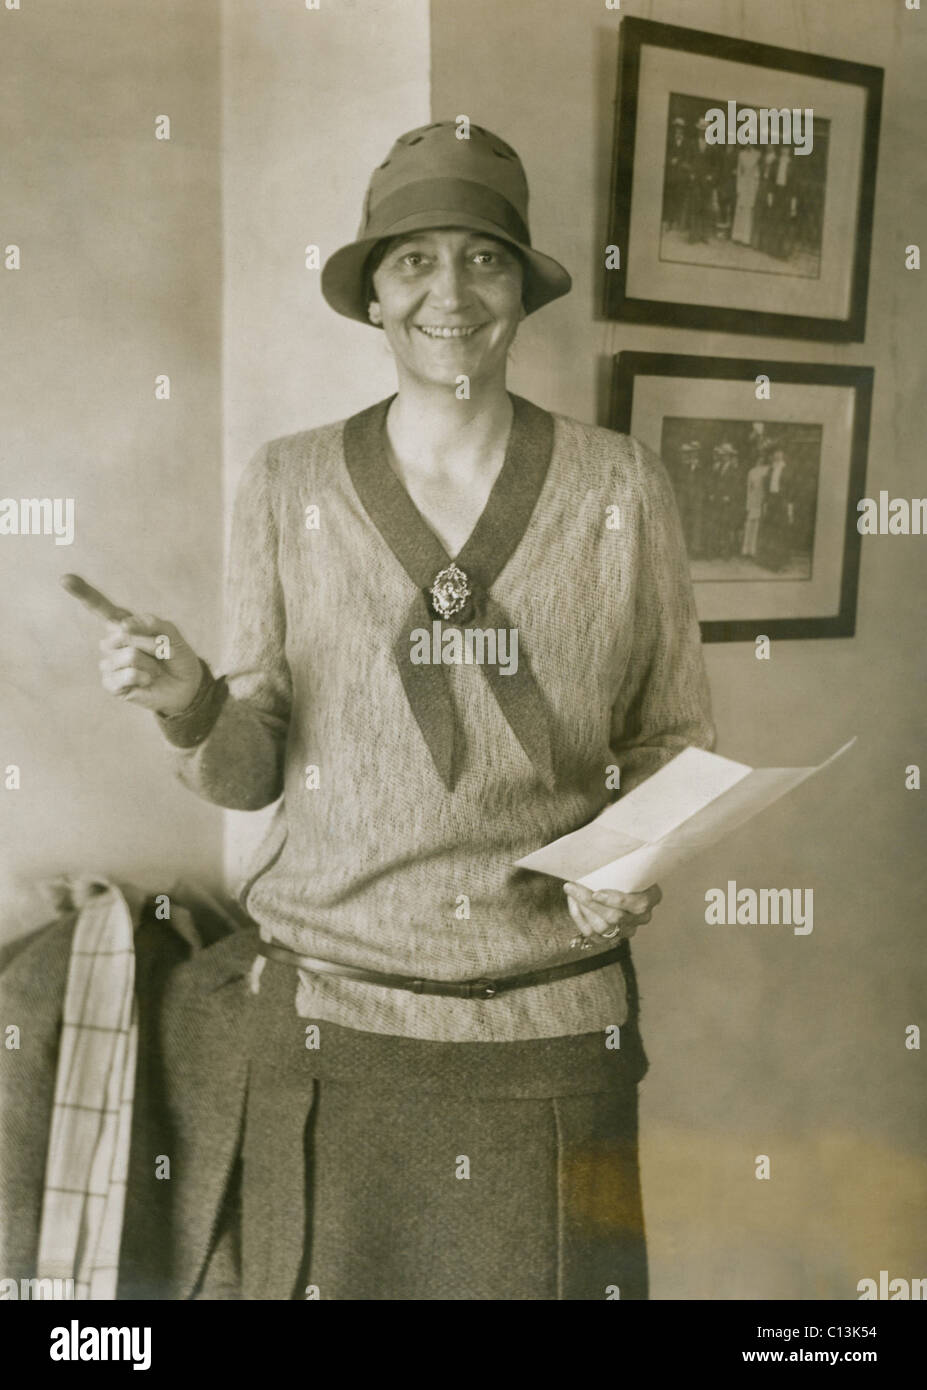 Mrs. Ruth Hanna McCormick (1880-1944), was active in women suffrage movement and in 1928 she was elected to the U.S. House of Representatives. 1927 photo. Stock Photo